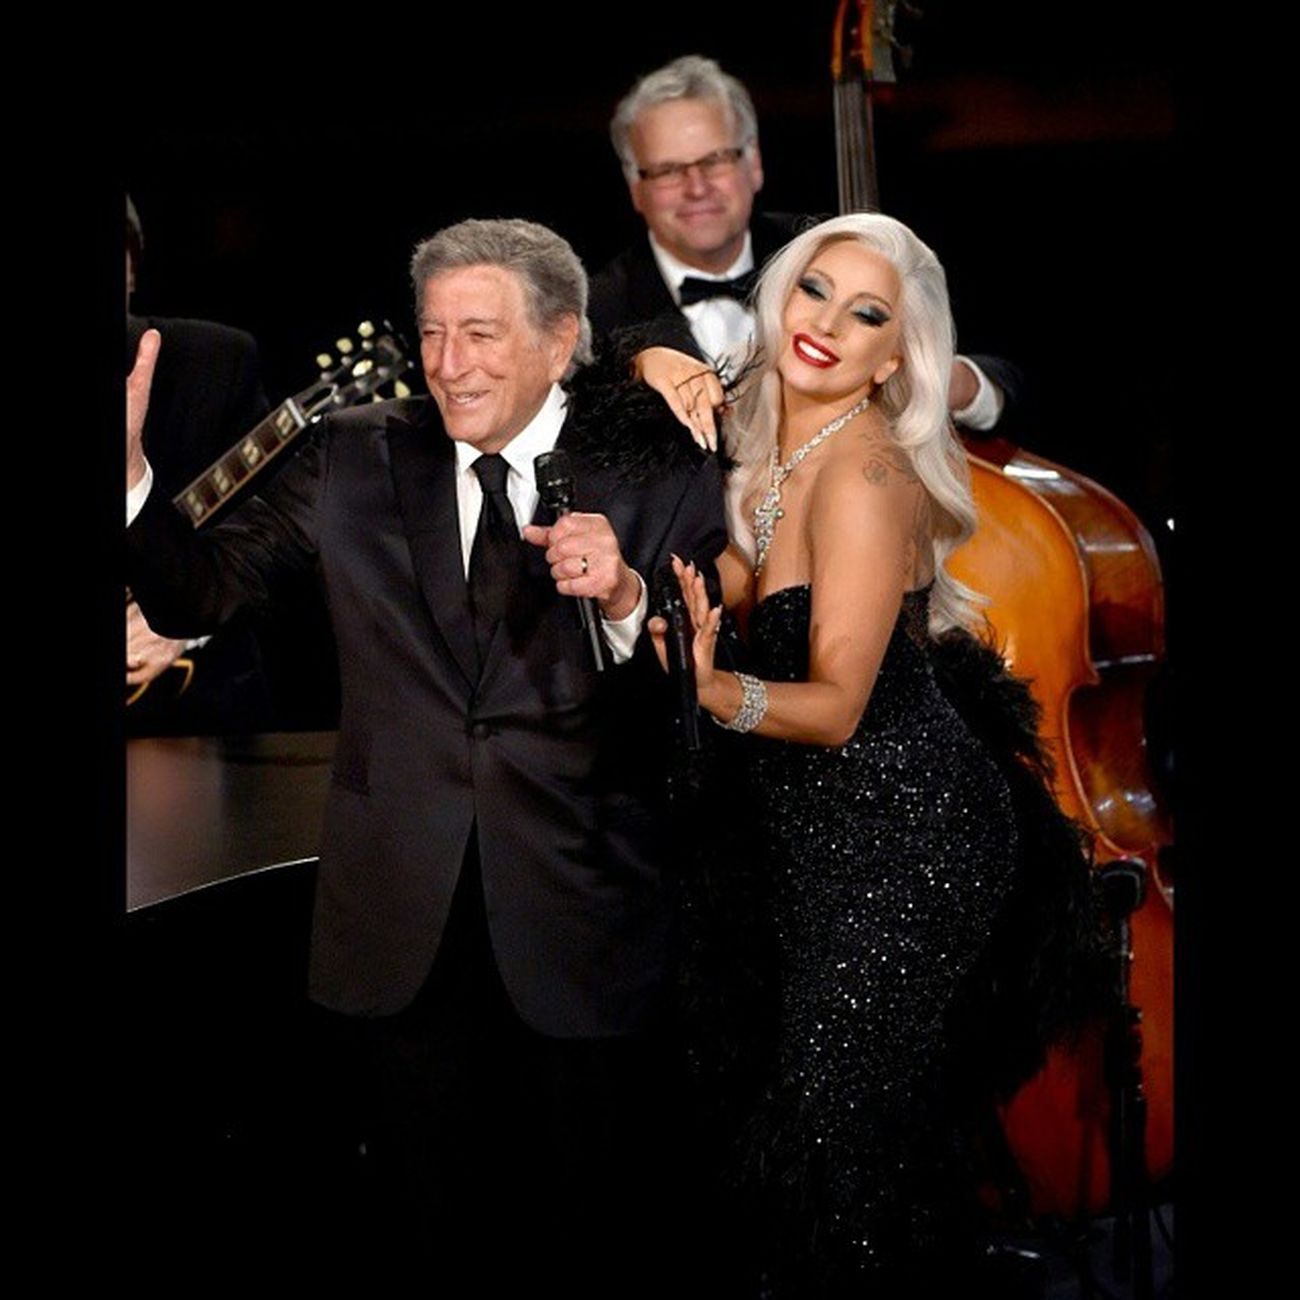 She's Happy so we are Happy! Great Job TonyGaga Cheektocheek is Awesome and I Love it So *----* Littlemonsters Littlemonster Gaga Instafan Music 57Grammys Grammy Hot Tonybennett